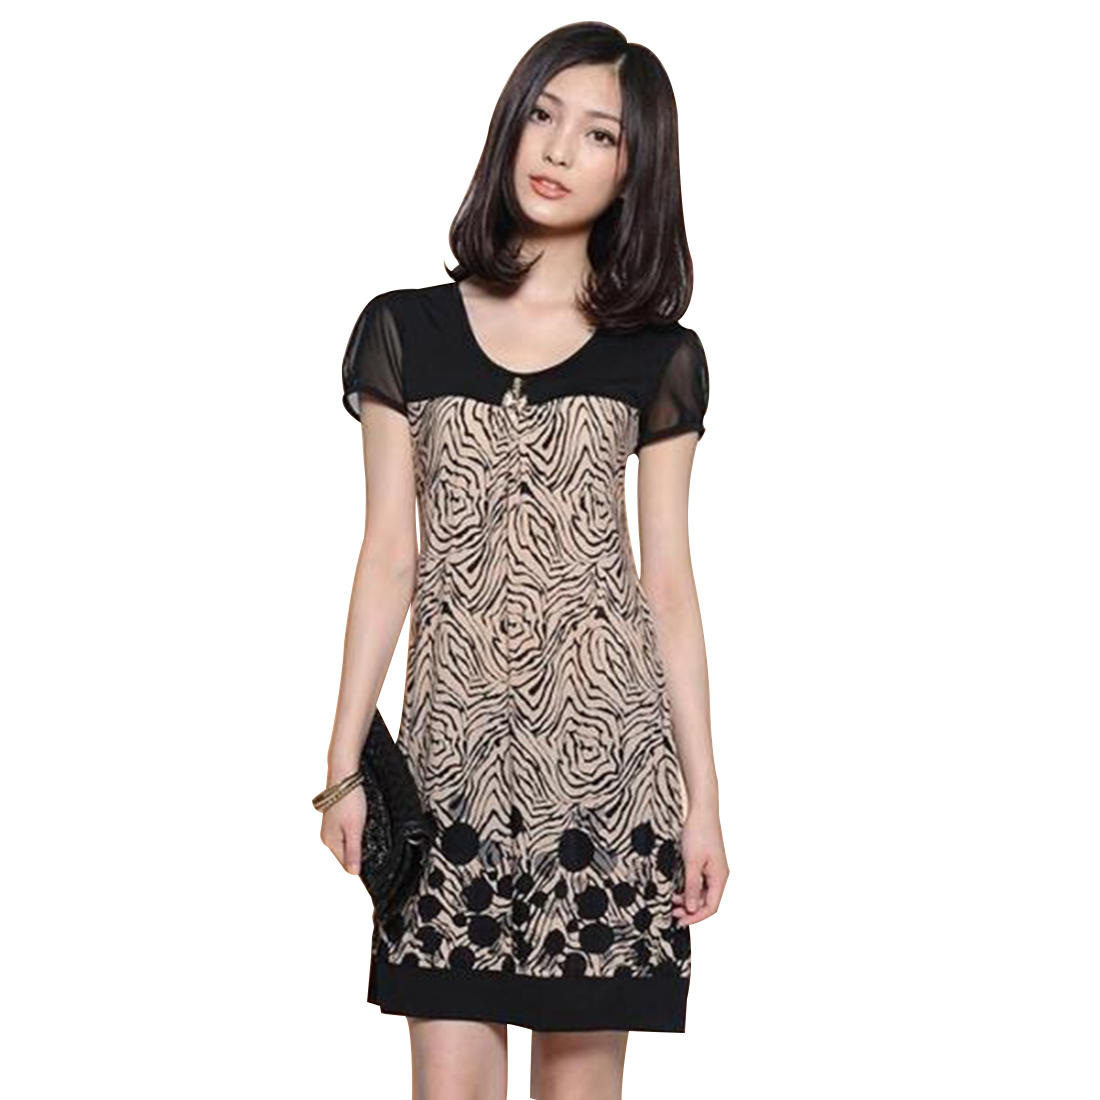 New Women's Lady Summer Casual Short Sleeve Evening Party Cocktail Office Dress